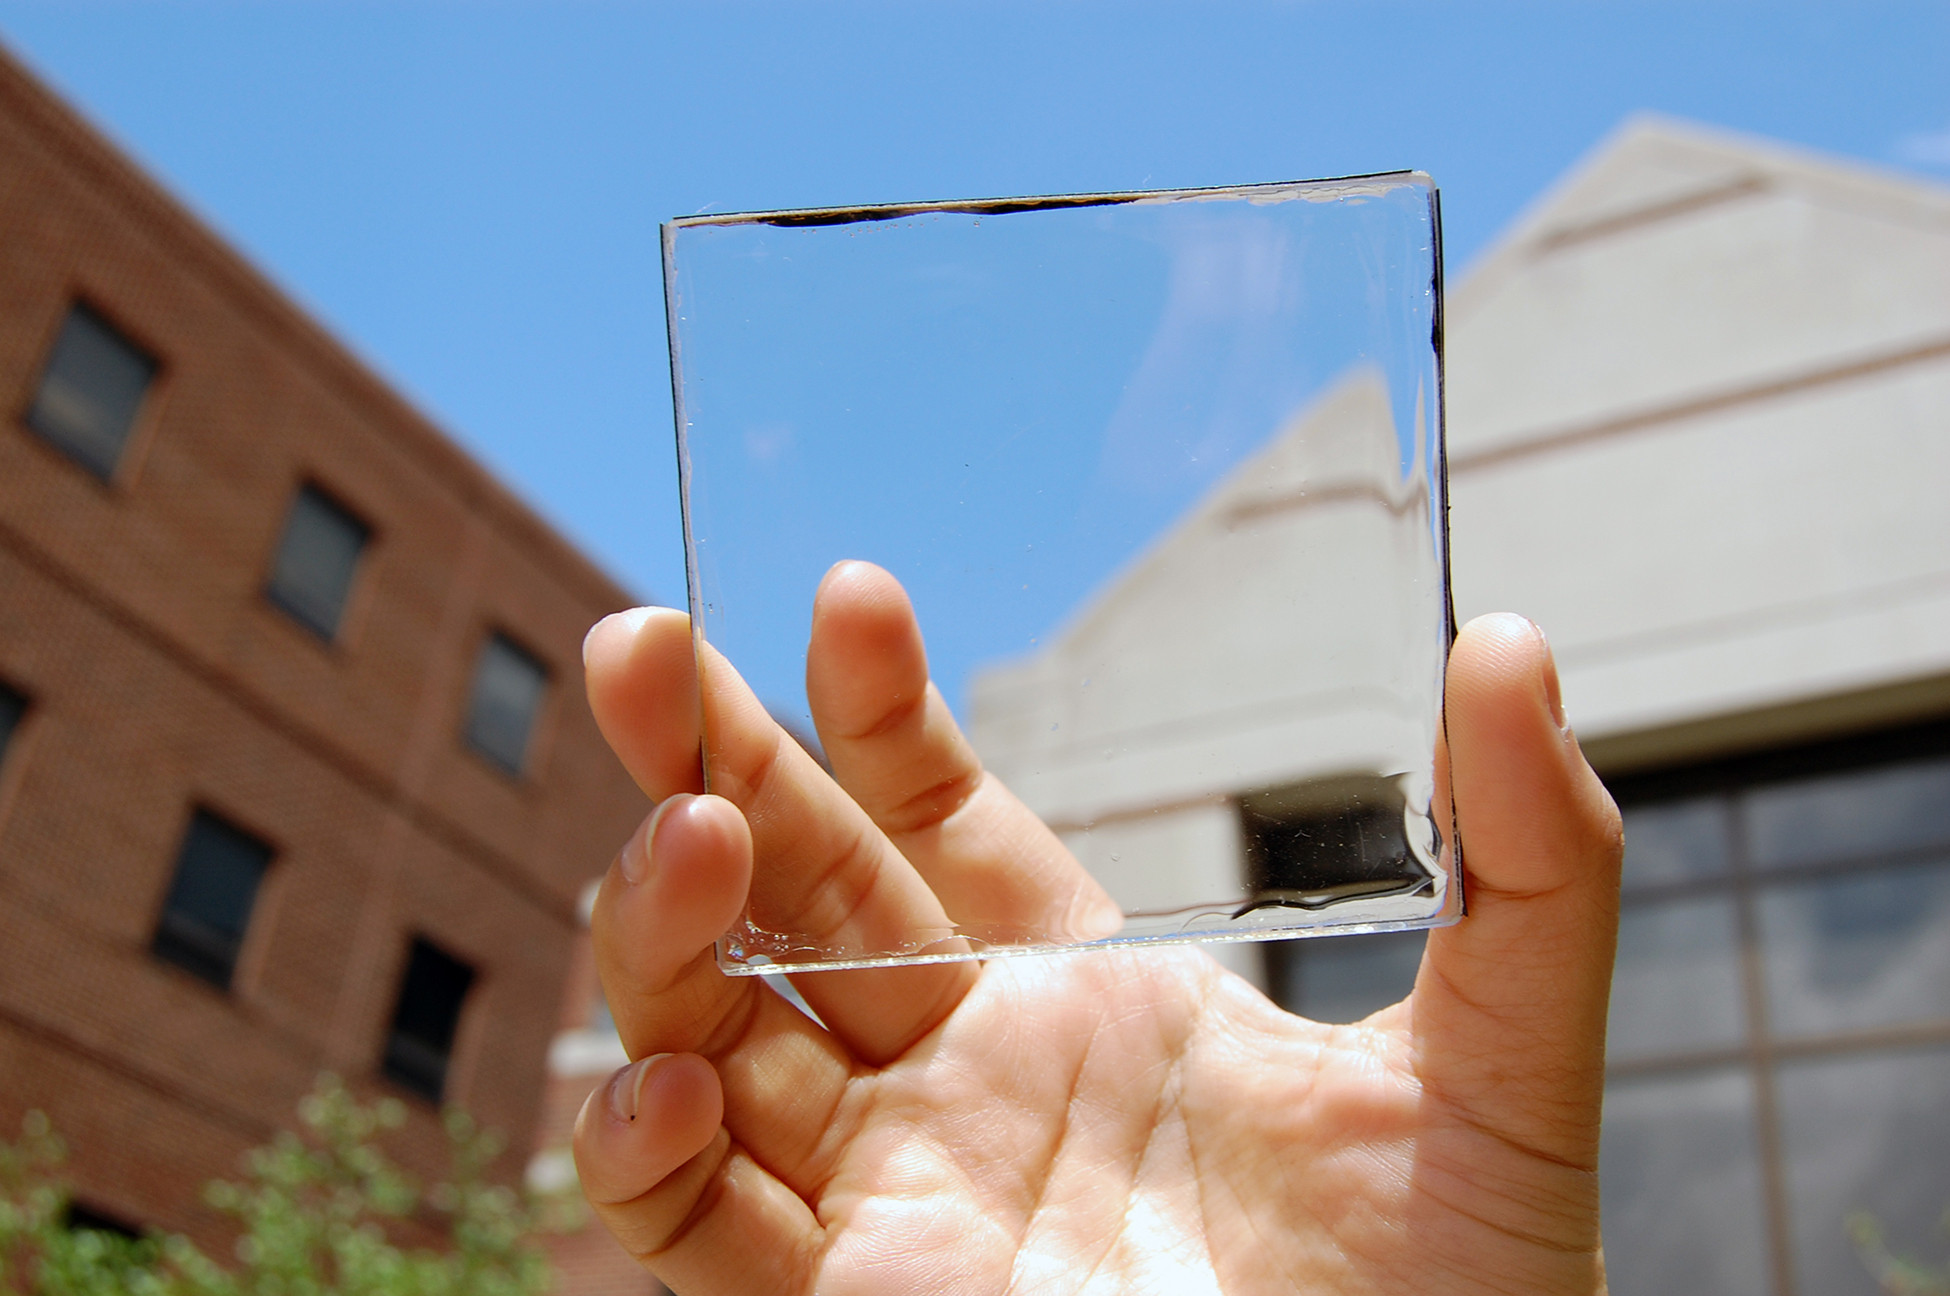 Invisible Solar Harvesting Technology Becomes Reality, Solar power with a view: MSU doctoral student Yimu Zhao holds up a transparent luminescent solar concentrator module. Image © Yimu Zhao